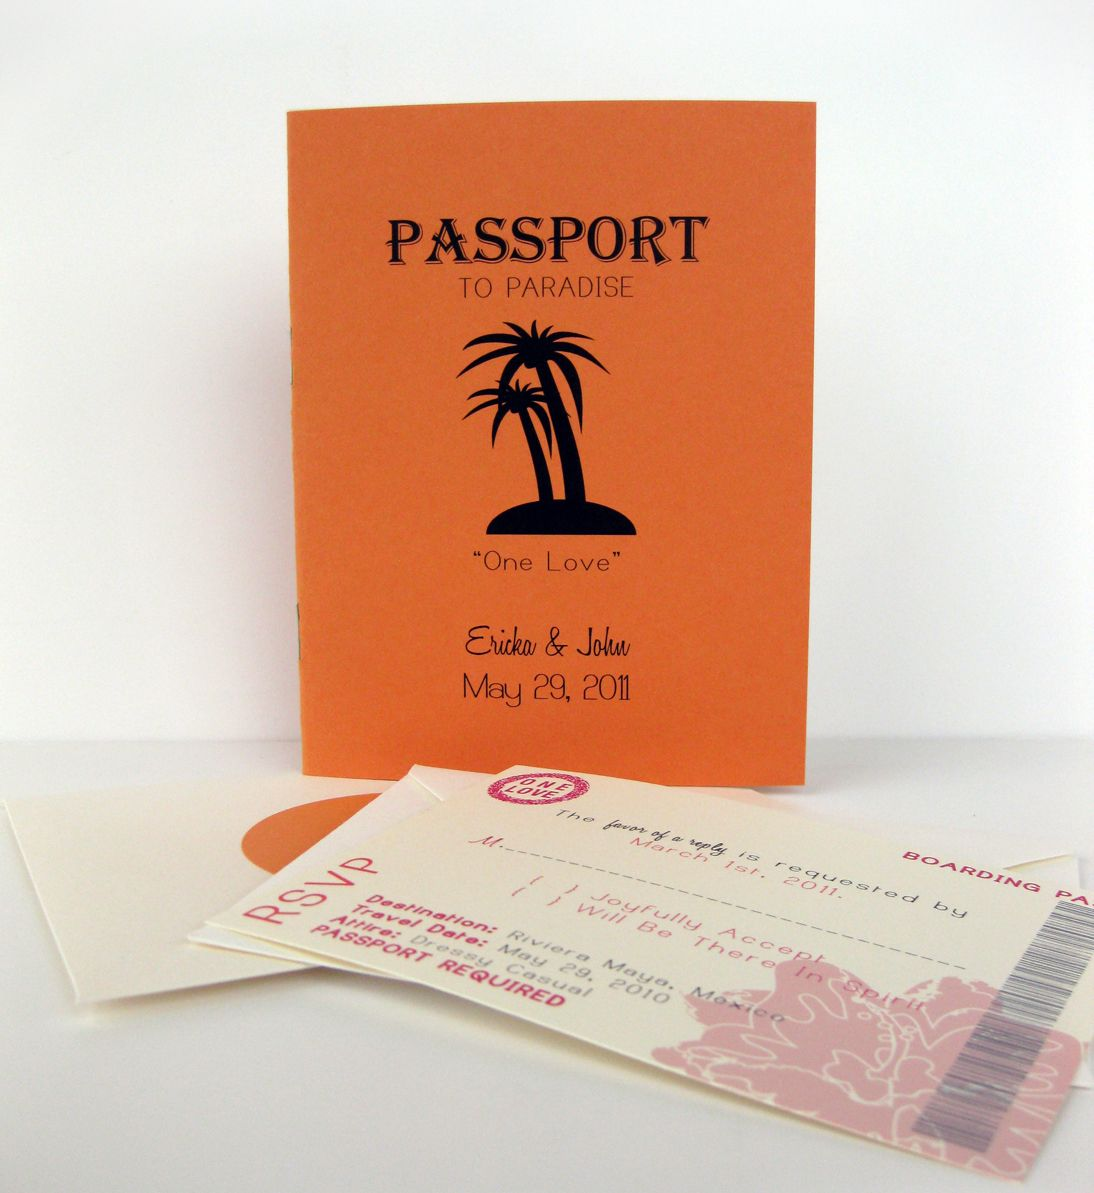 Passport wedding invitations | San Diego Sunsets | Pinterest ...